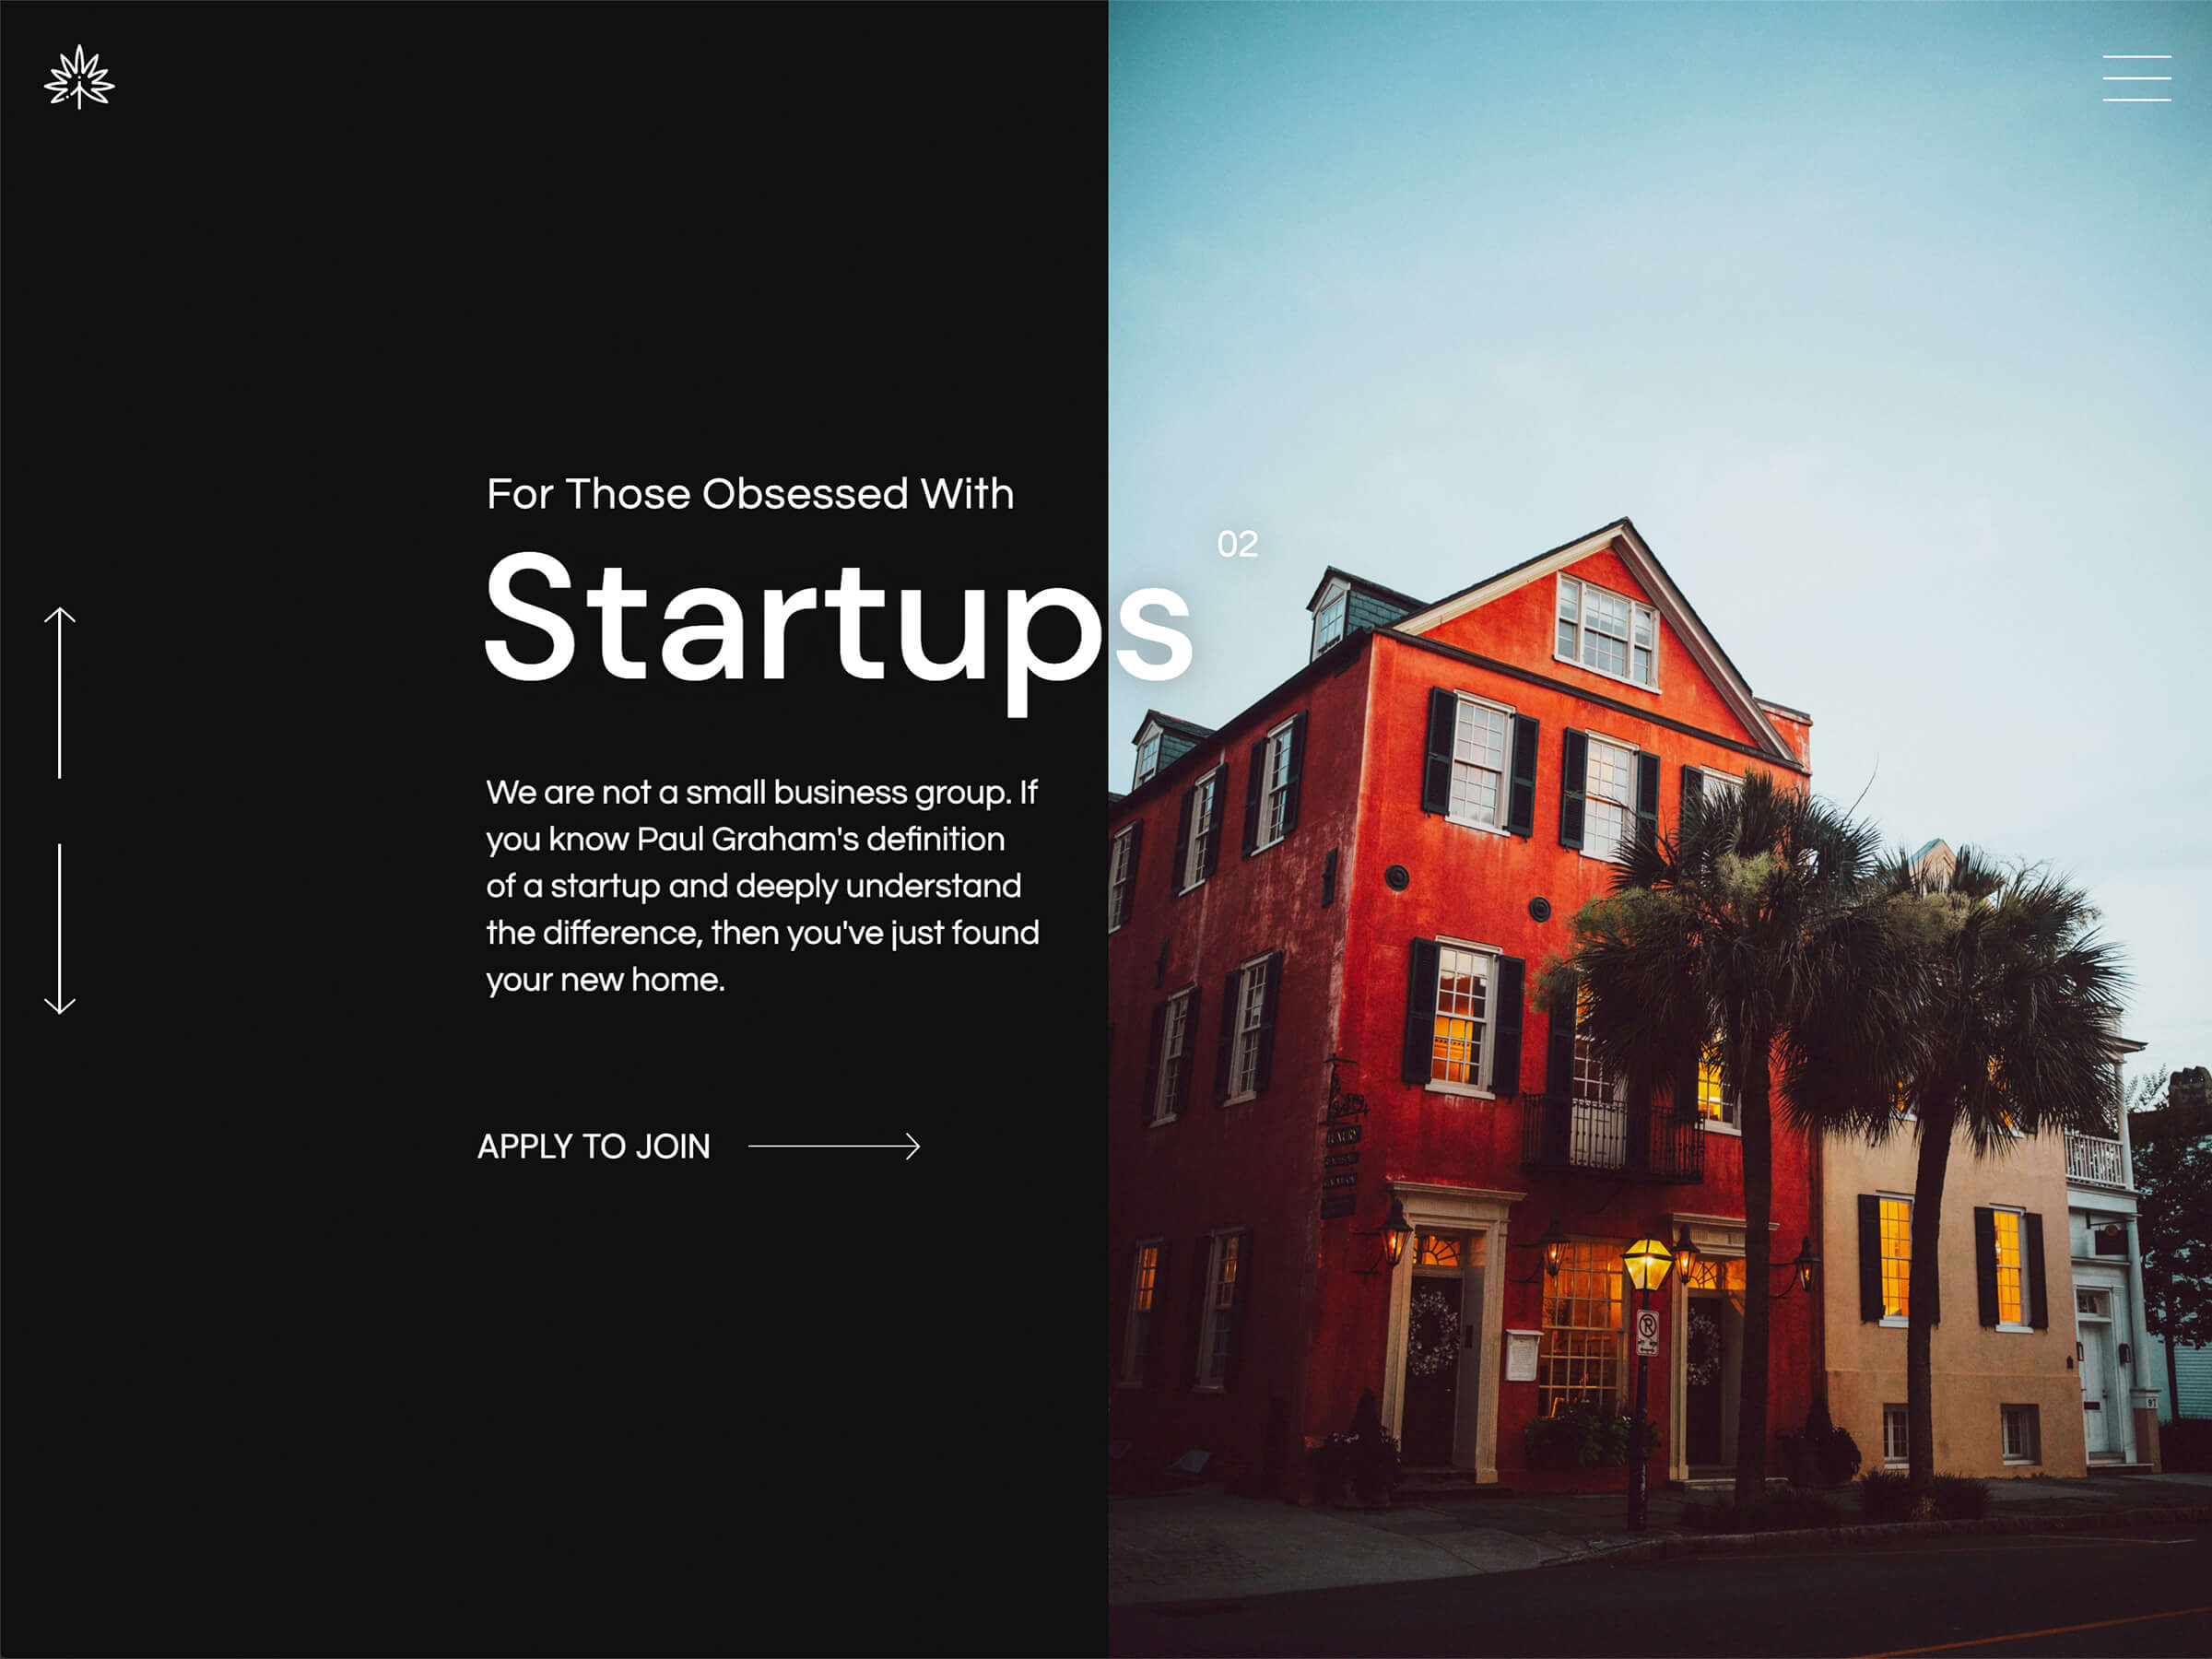 The second slide from the homepage that describes that we are not a small business group, we are a startup group